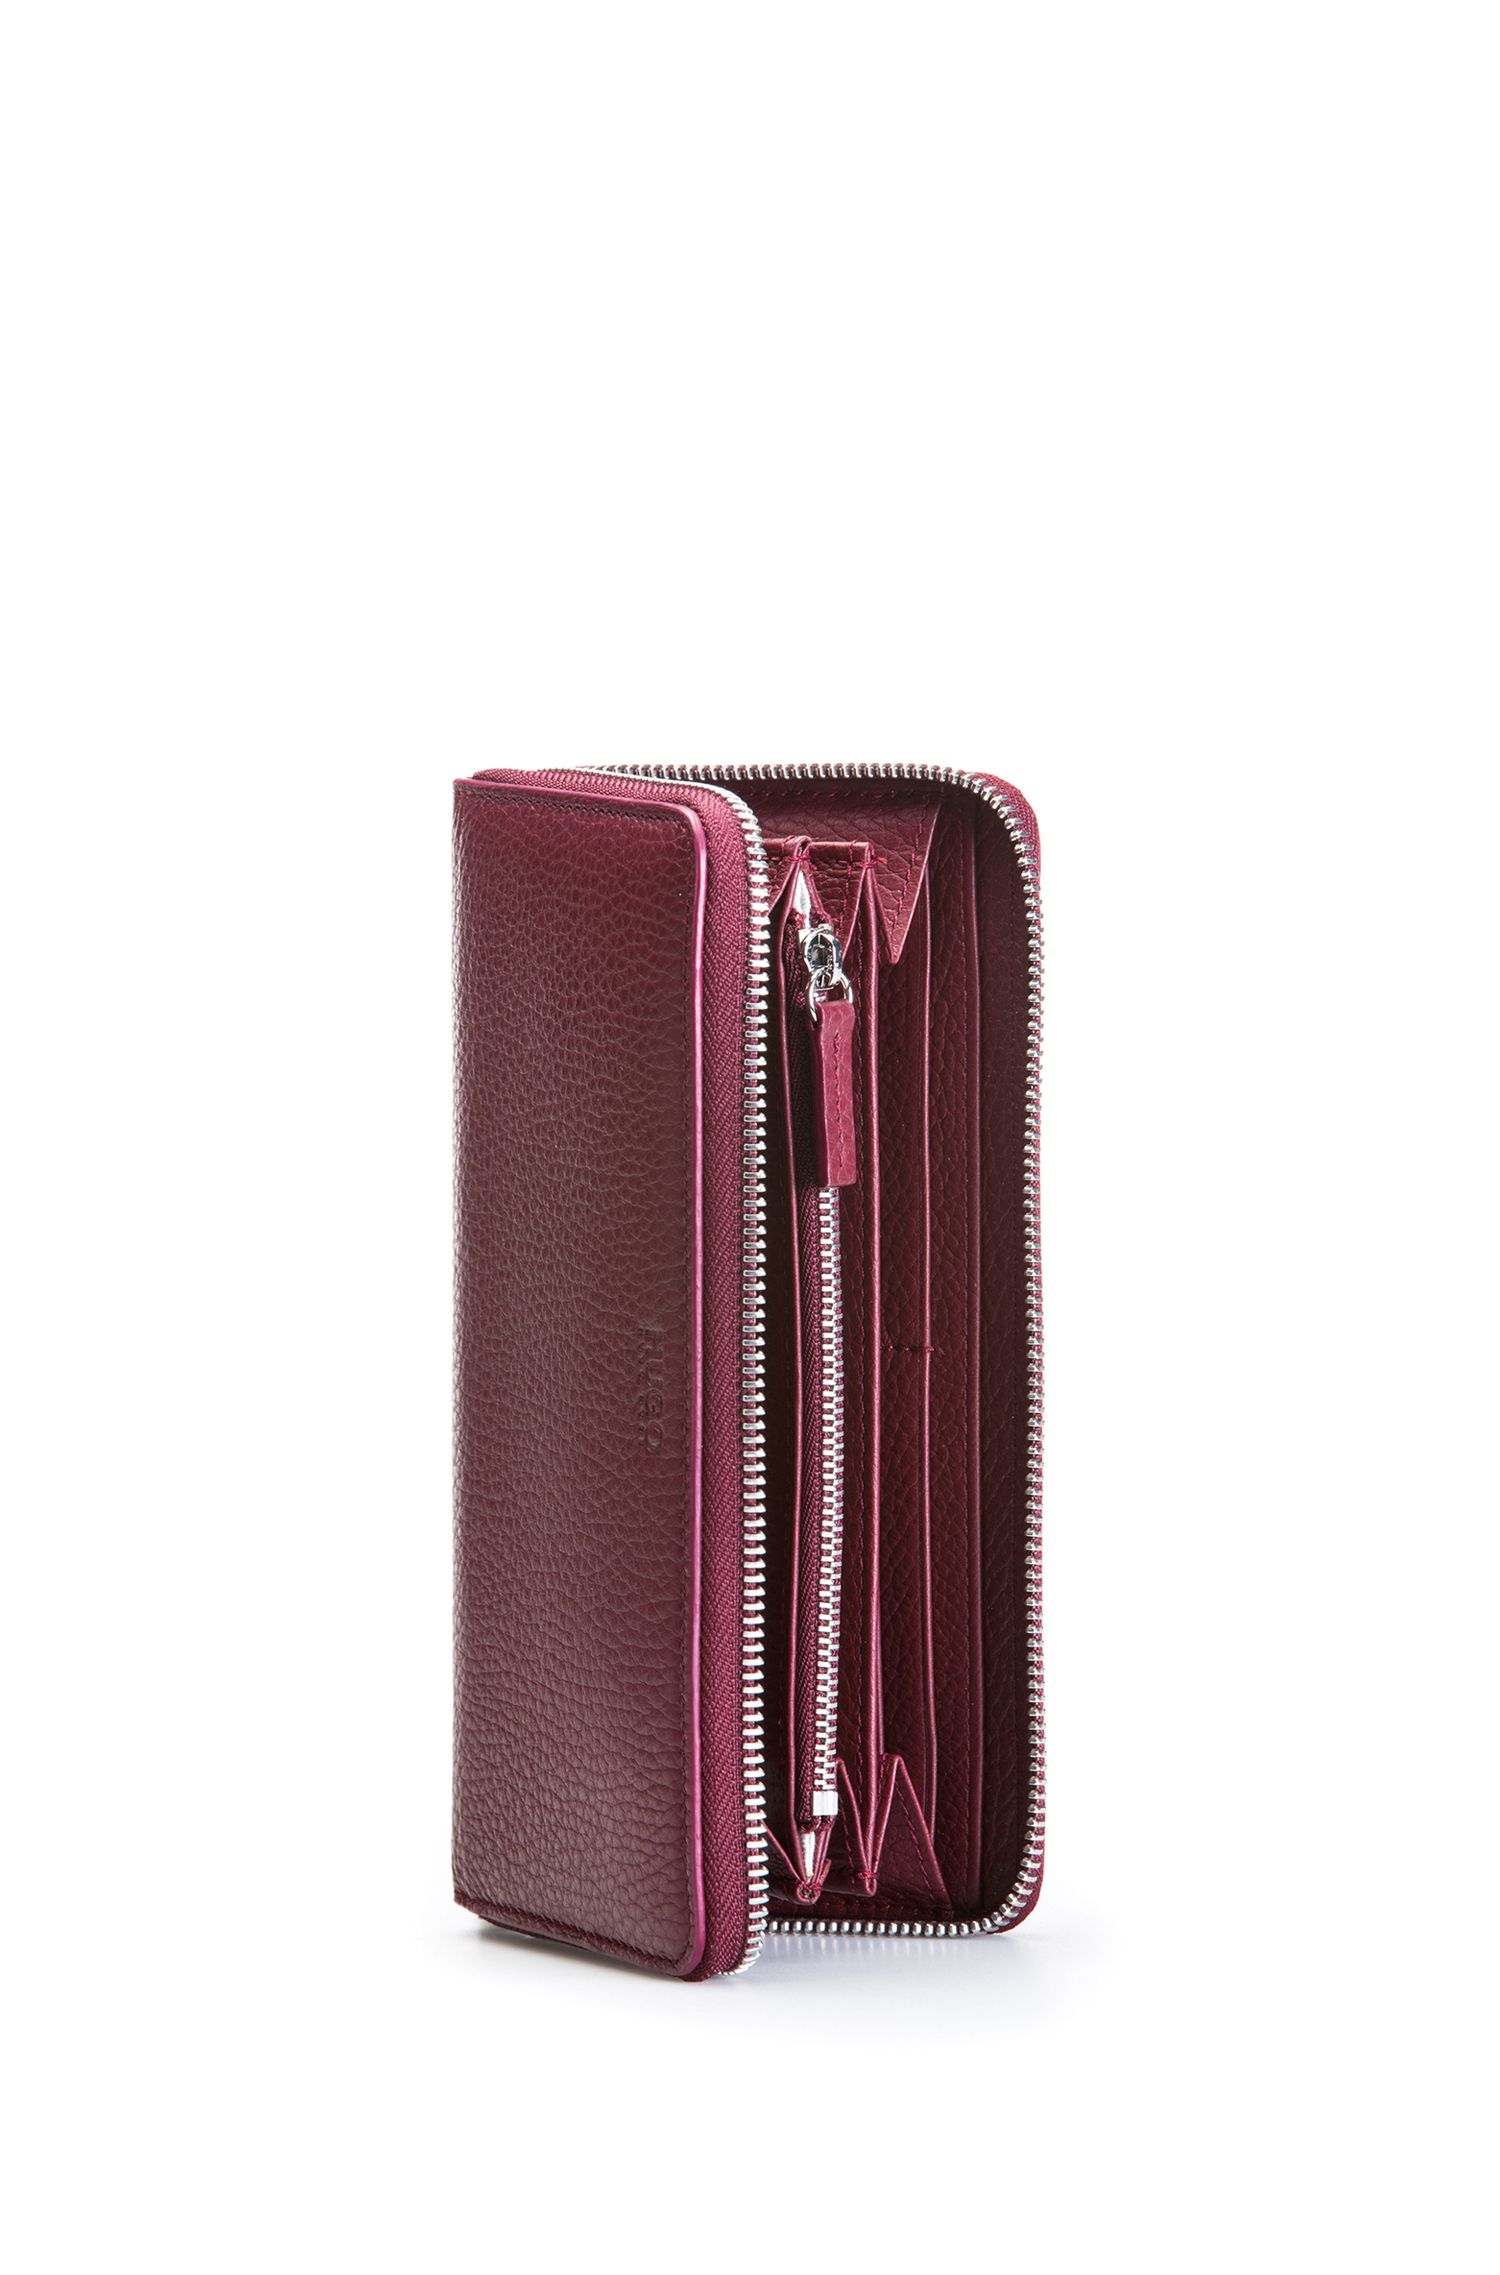 Zip-around wallet in grained leather, Dark Red